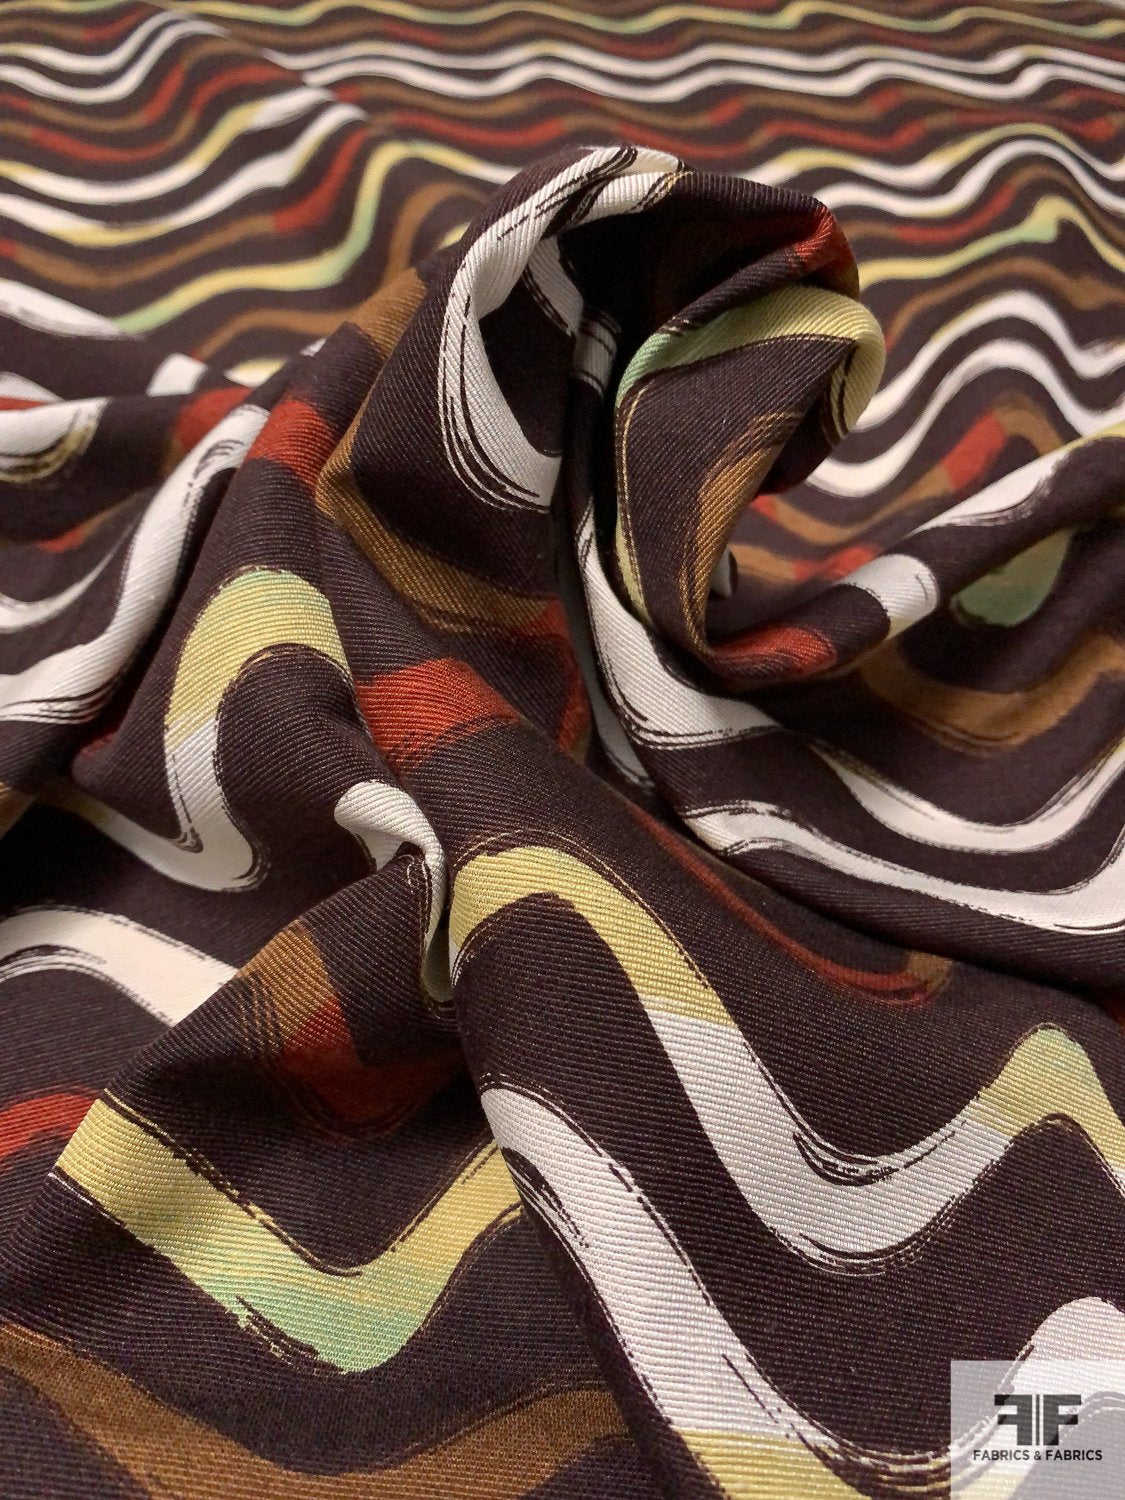 Wavy Stripes Printed Soft Silk Faille - Brown / Rust / Tan / Sage